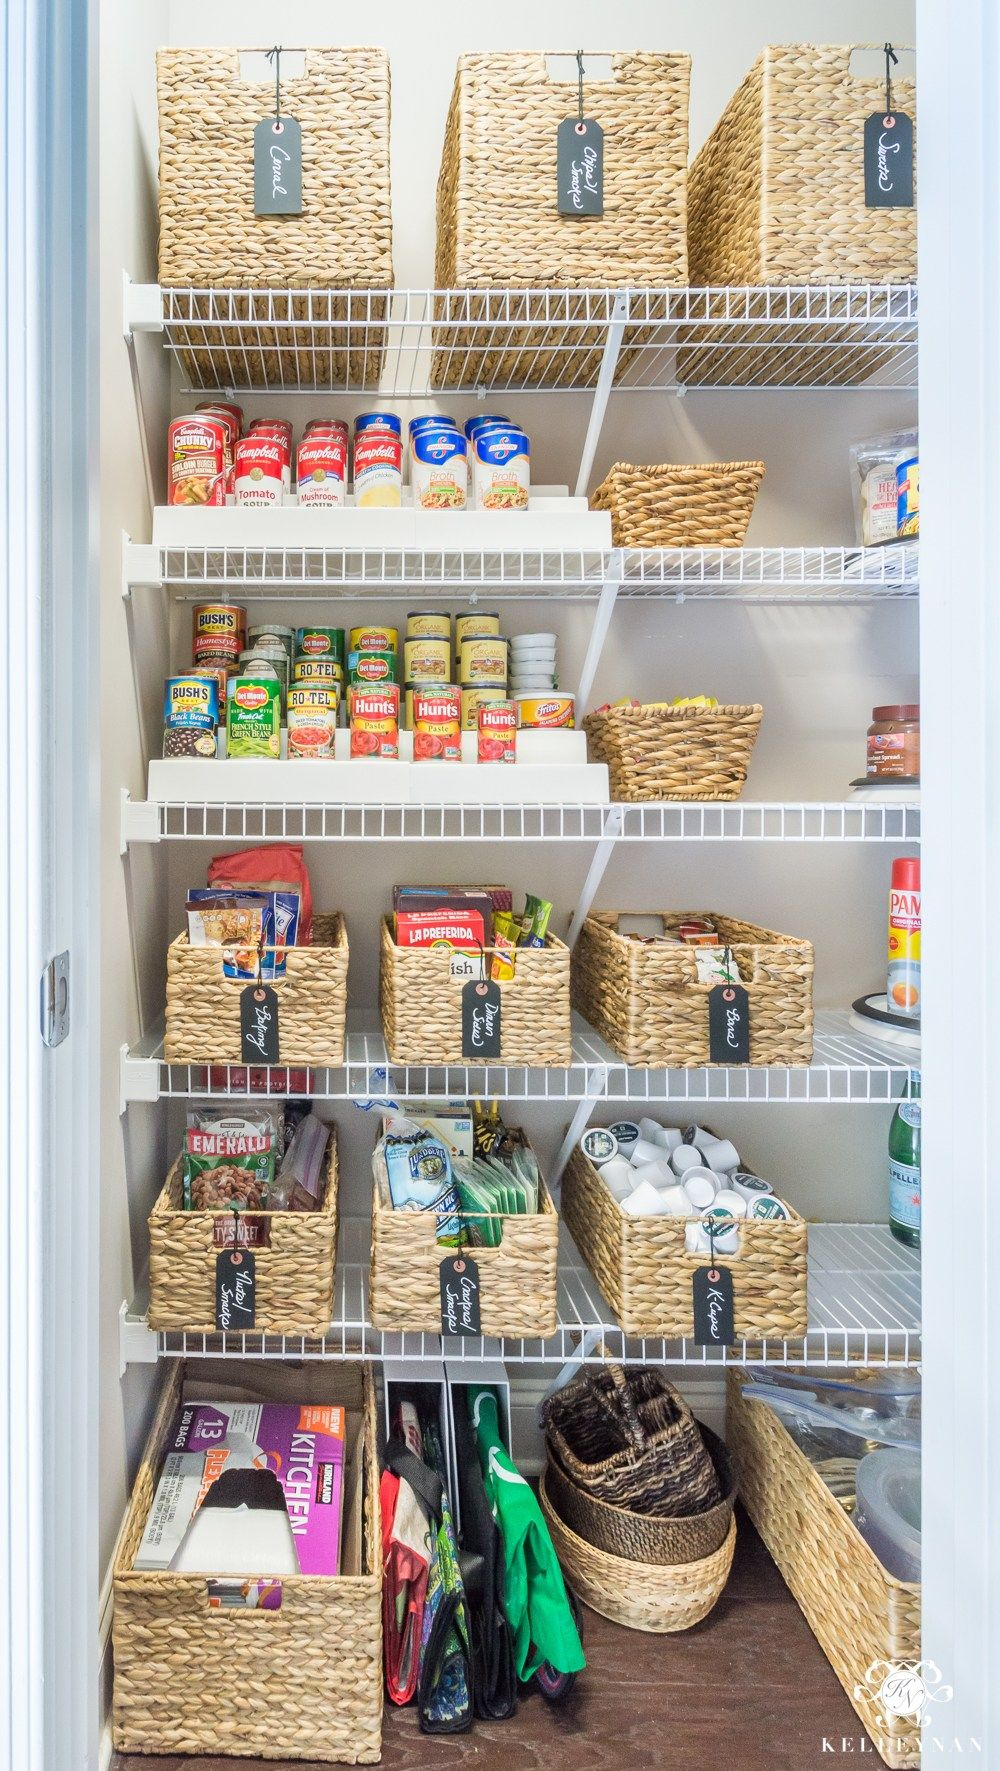 13 Genius Pantry Organization Ideas That'll Blow Your Mind #pantryorganizationideas